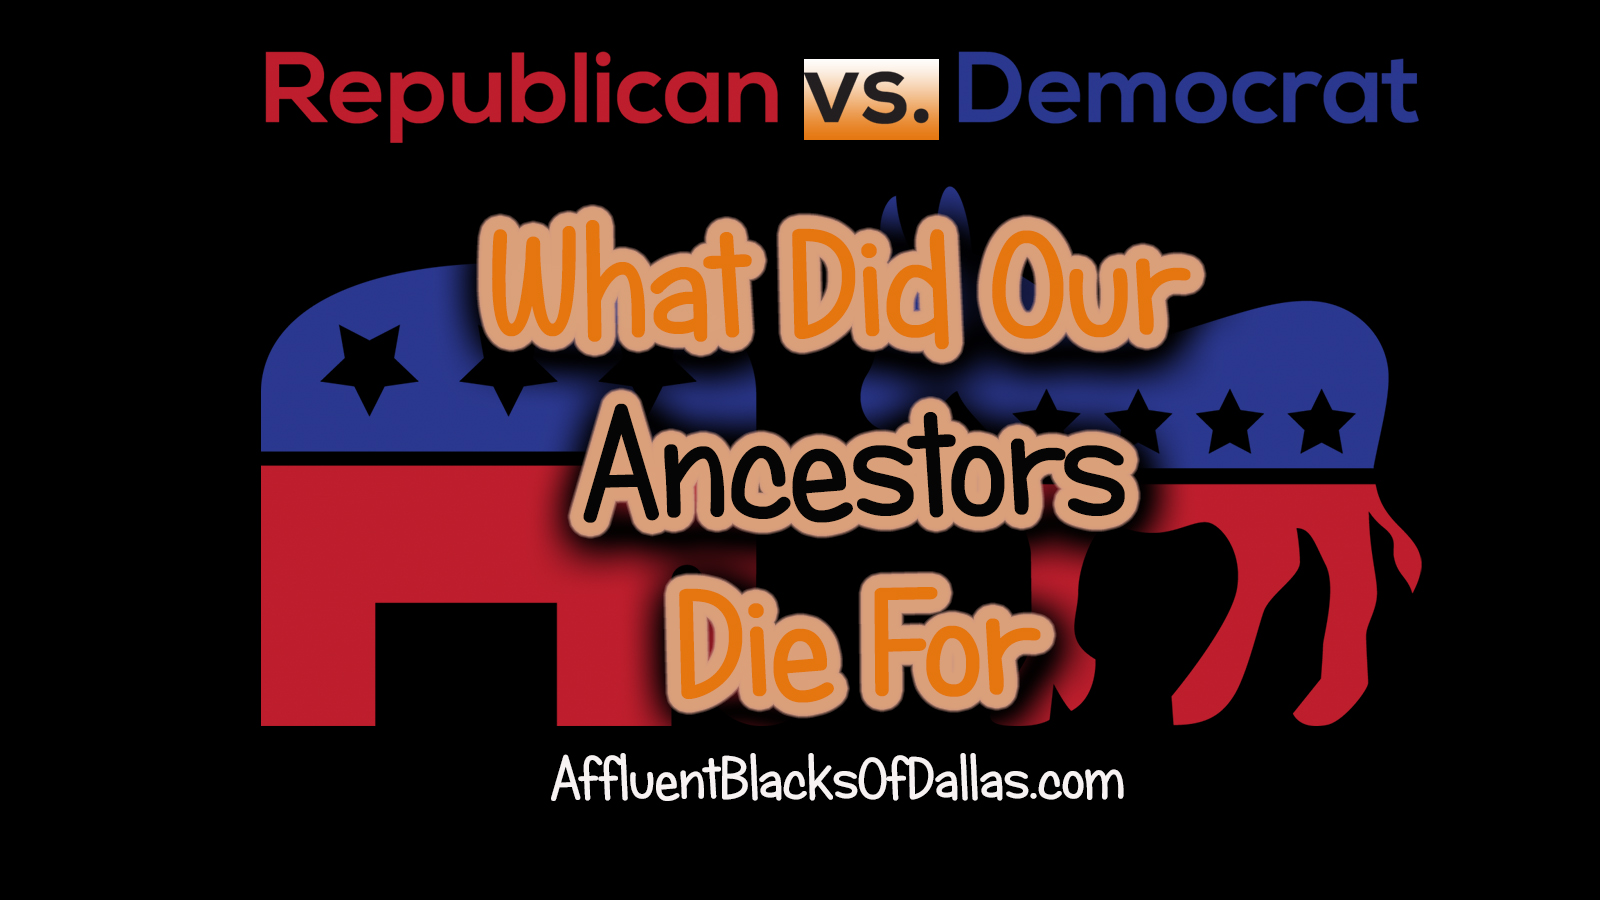 Did Our Ancestors Die for the Right to Vote?